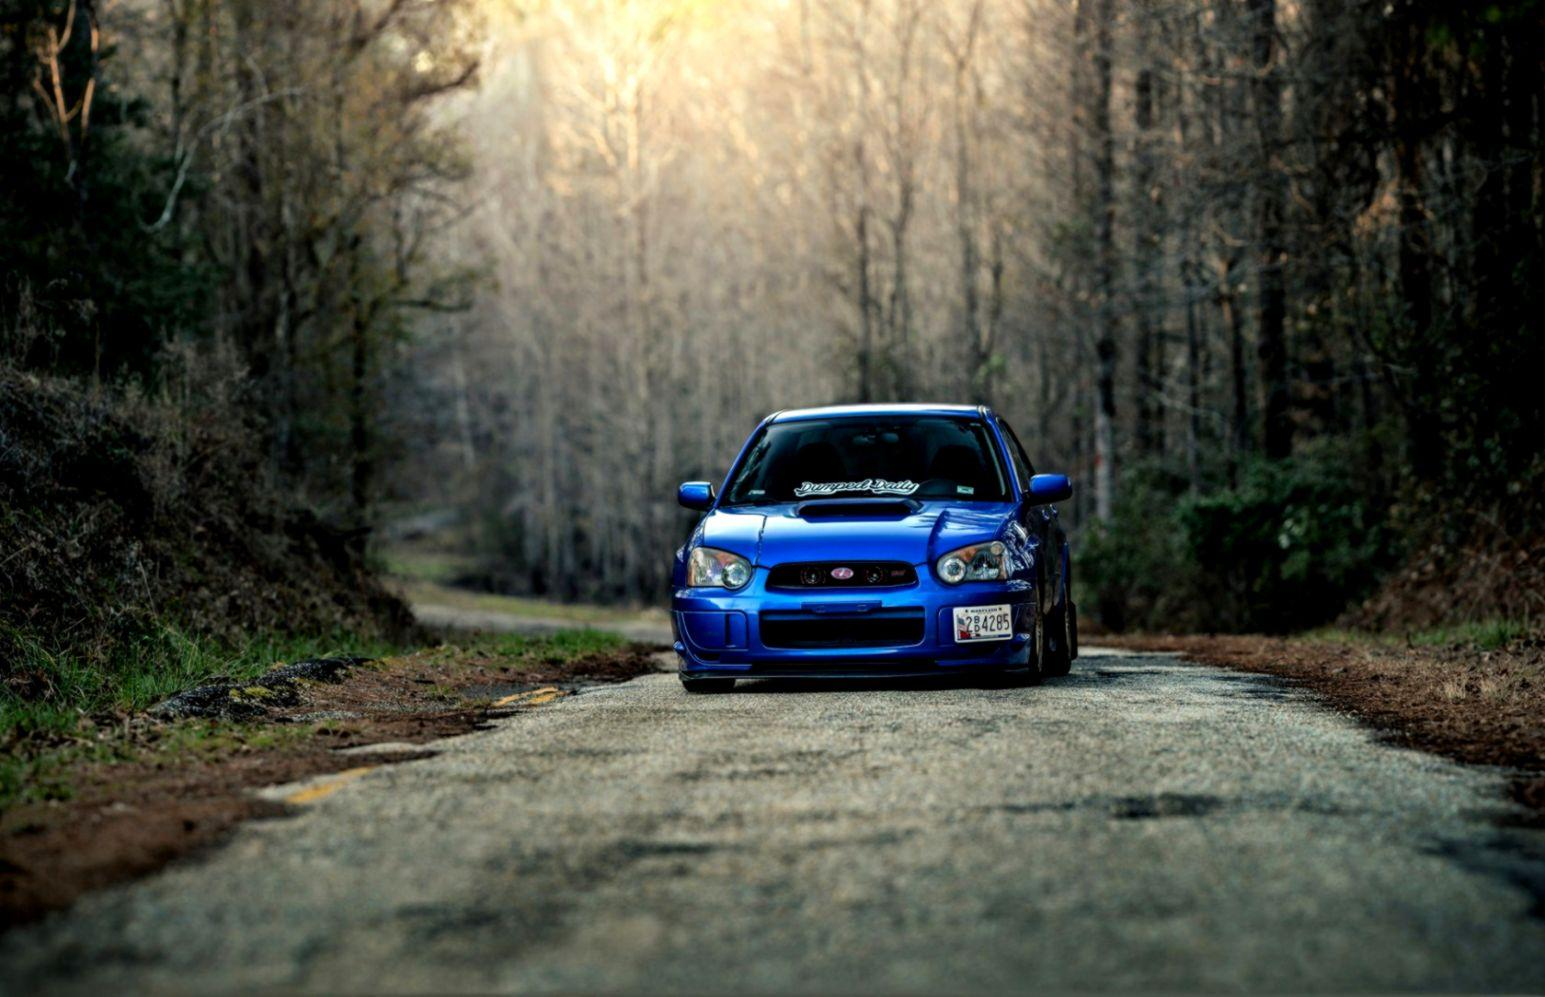 Subaru Impreza Road Hd Wallpaper | Wallpapers Mobile